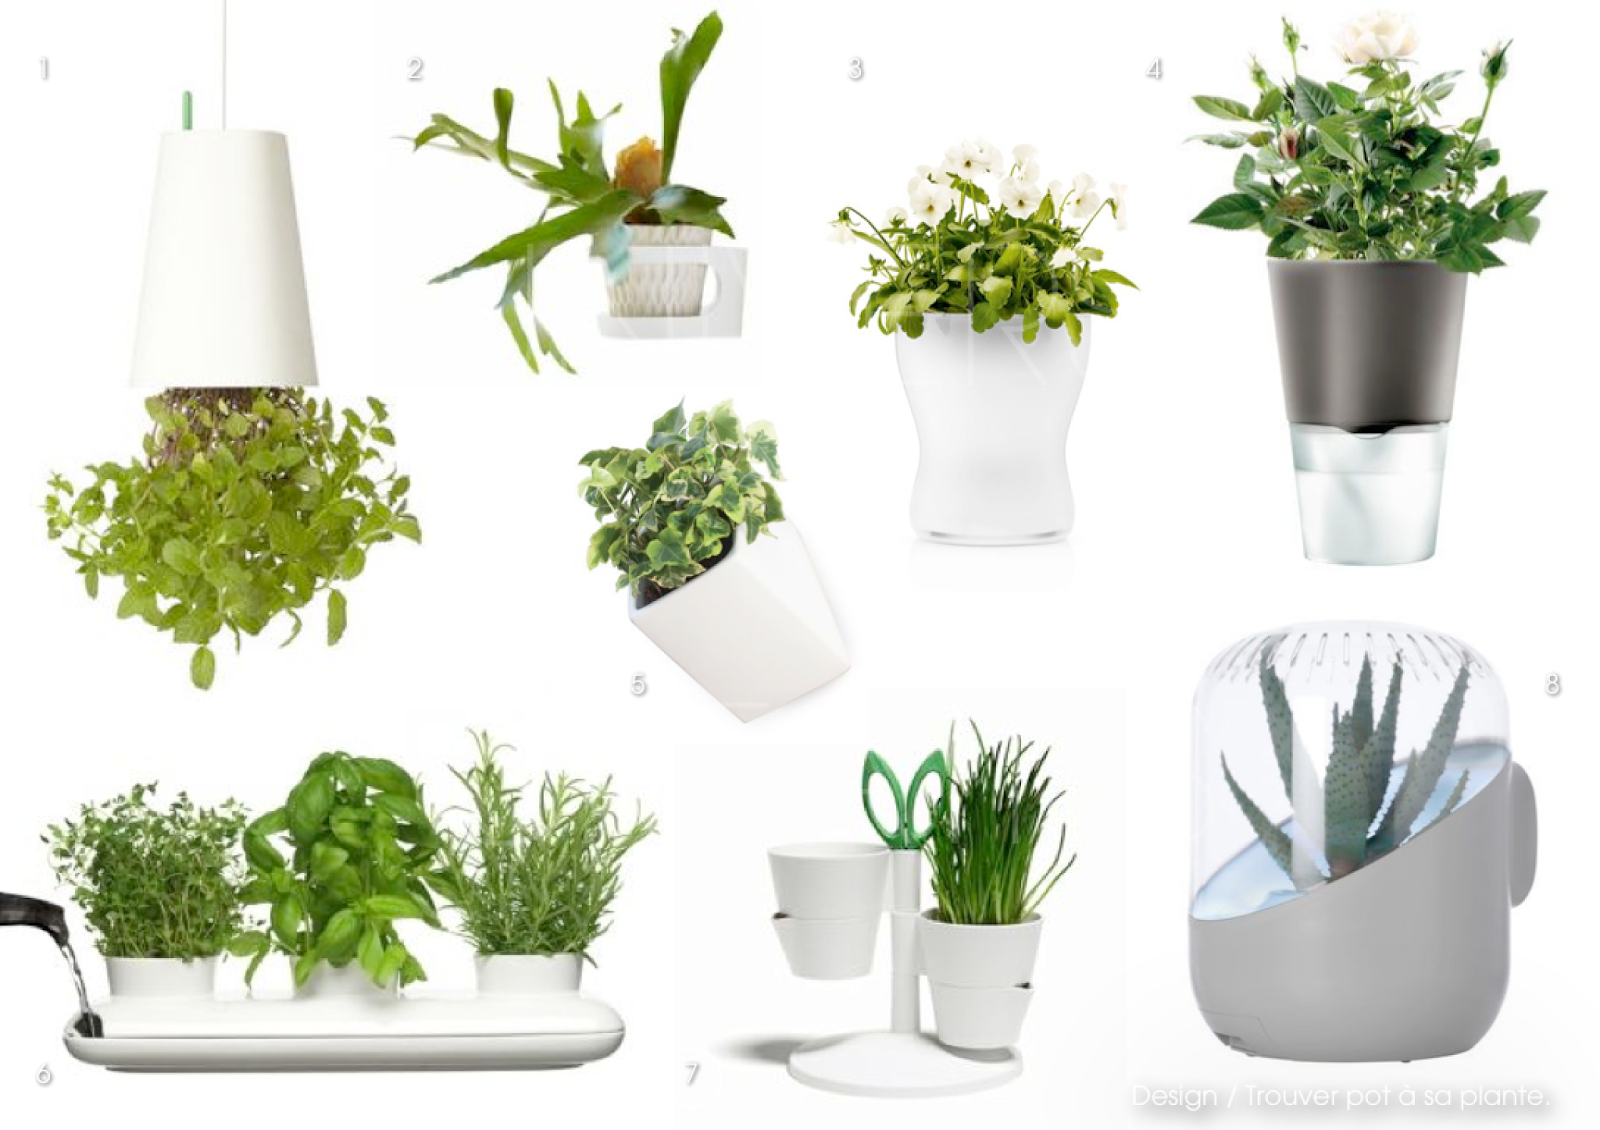 Univers creatifs design trouver pot sa plante for Pot de plante design